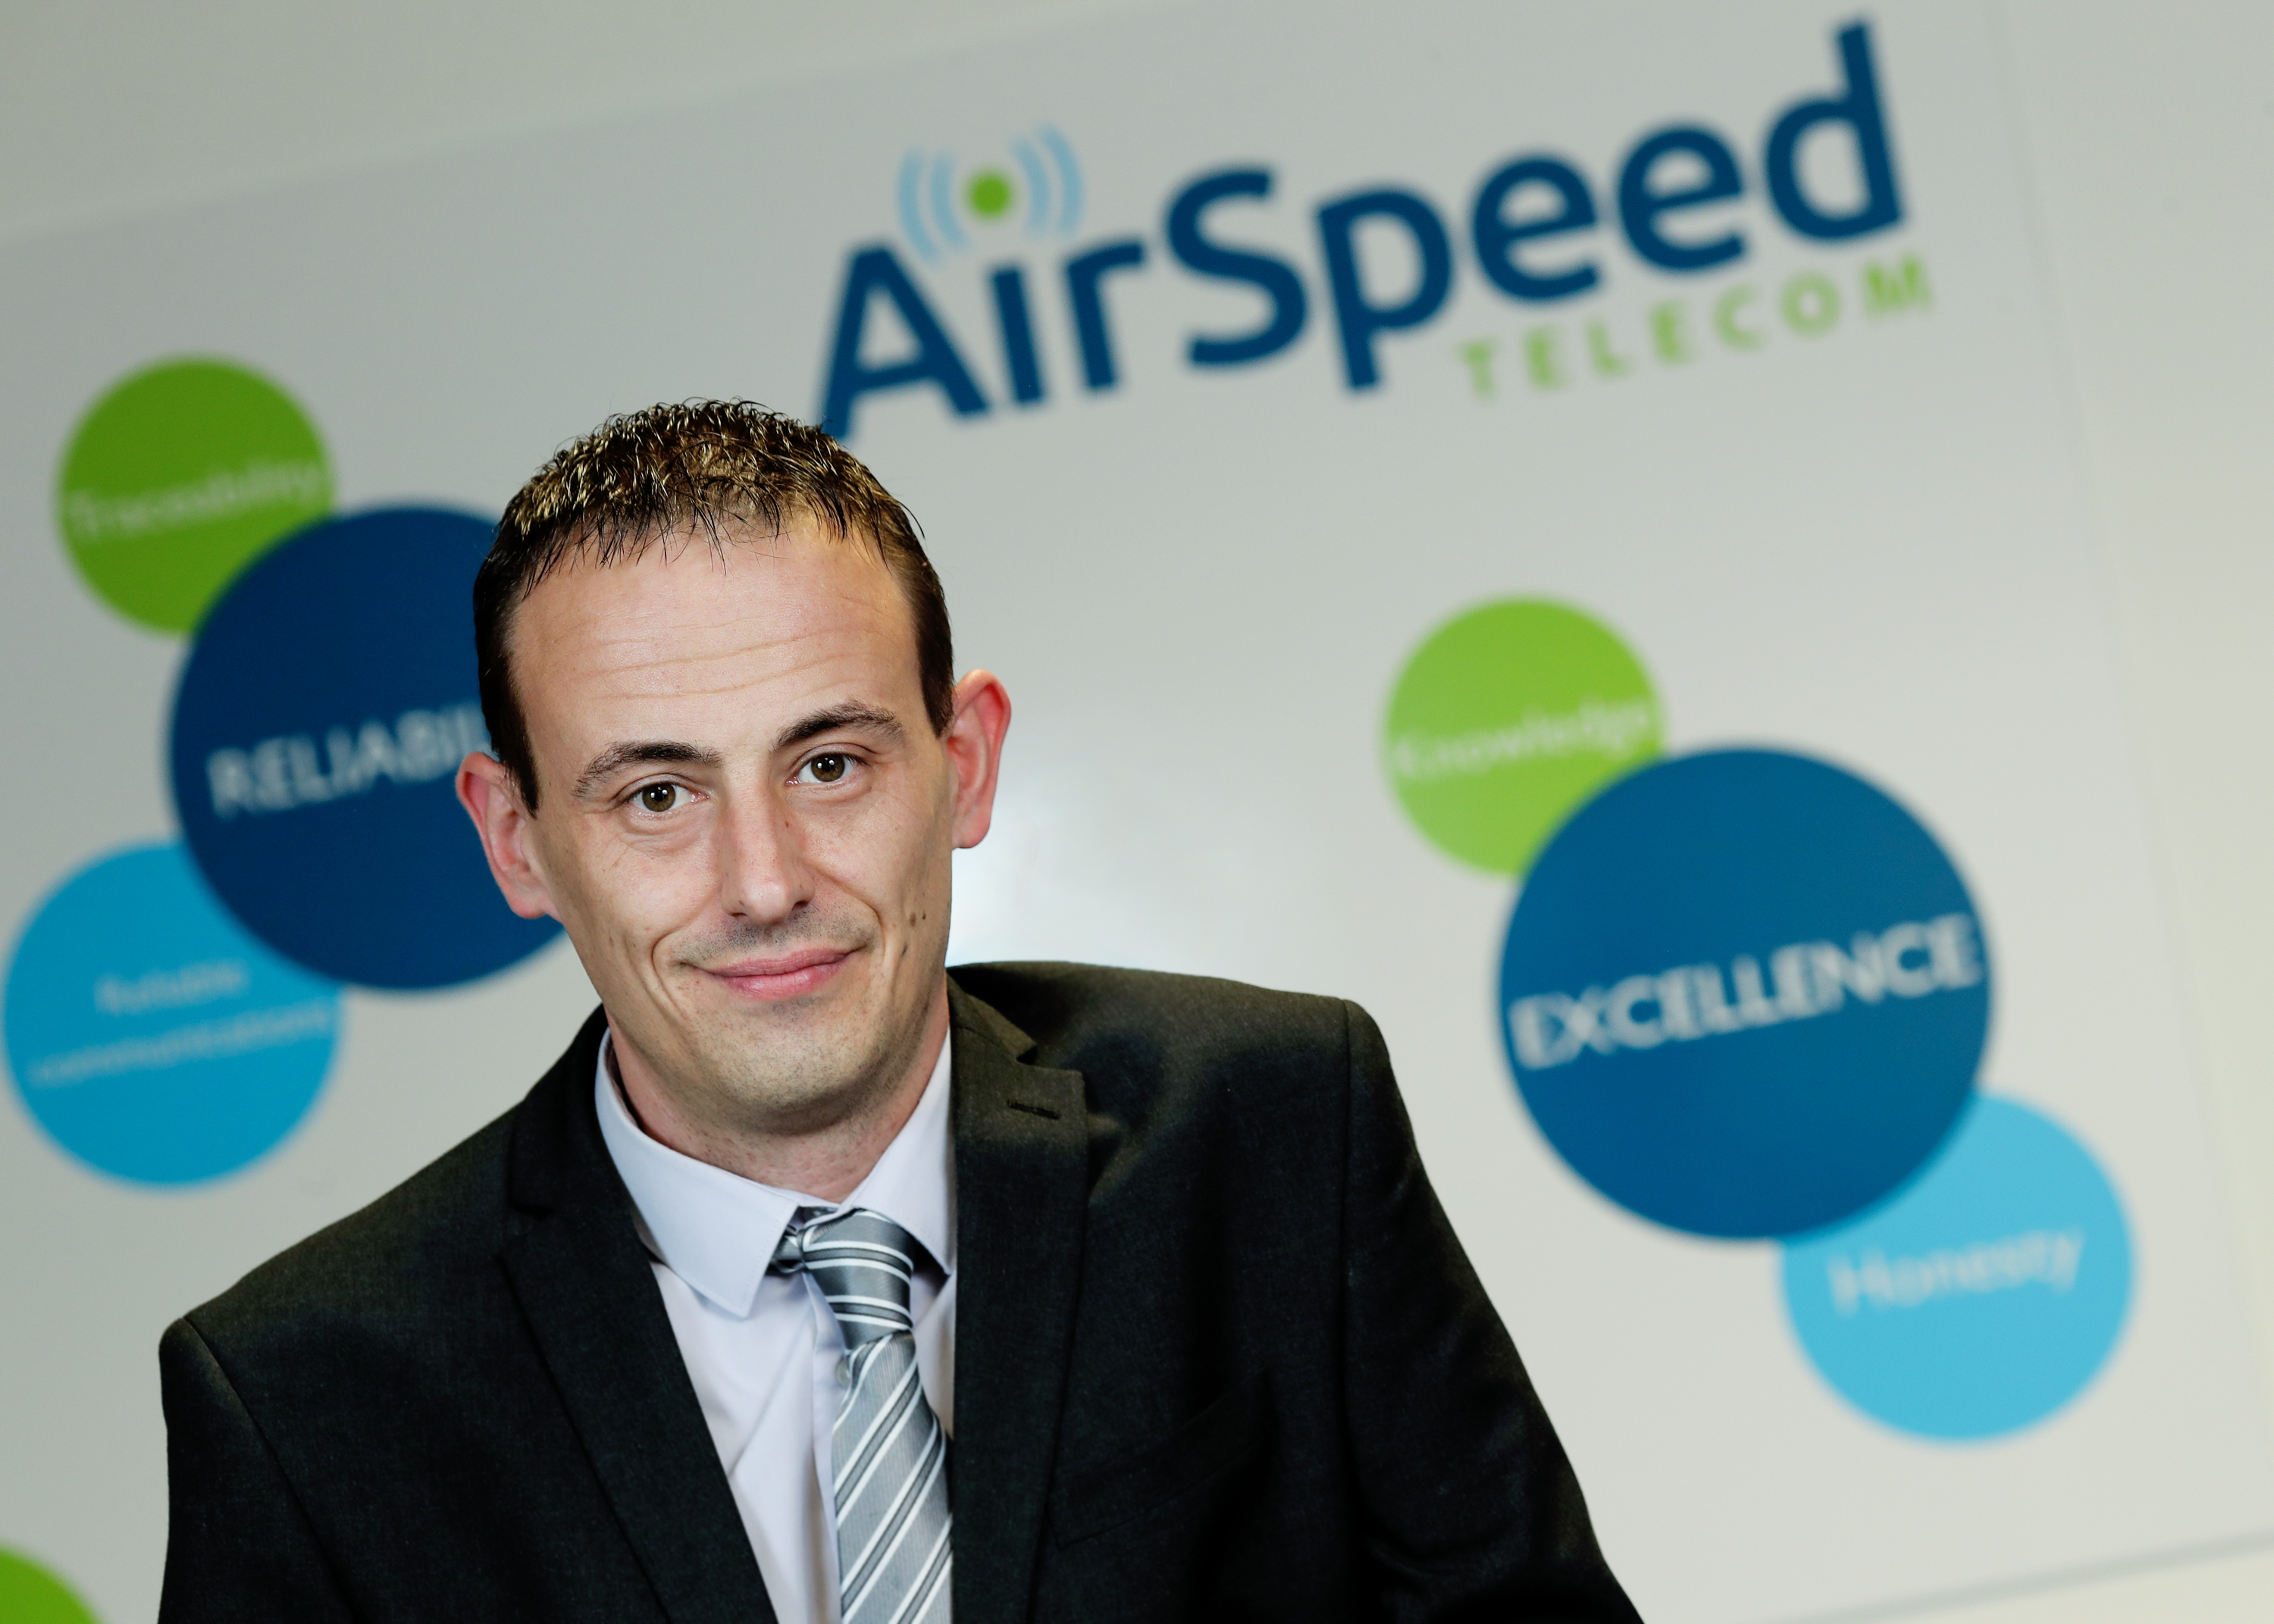 AirSpeed Telecom appoints Gary Connors as  Customer Support and Operations Manager